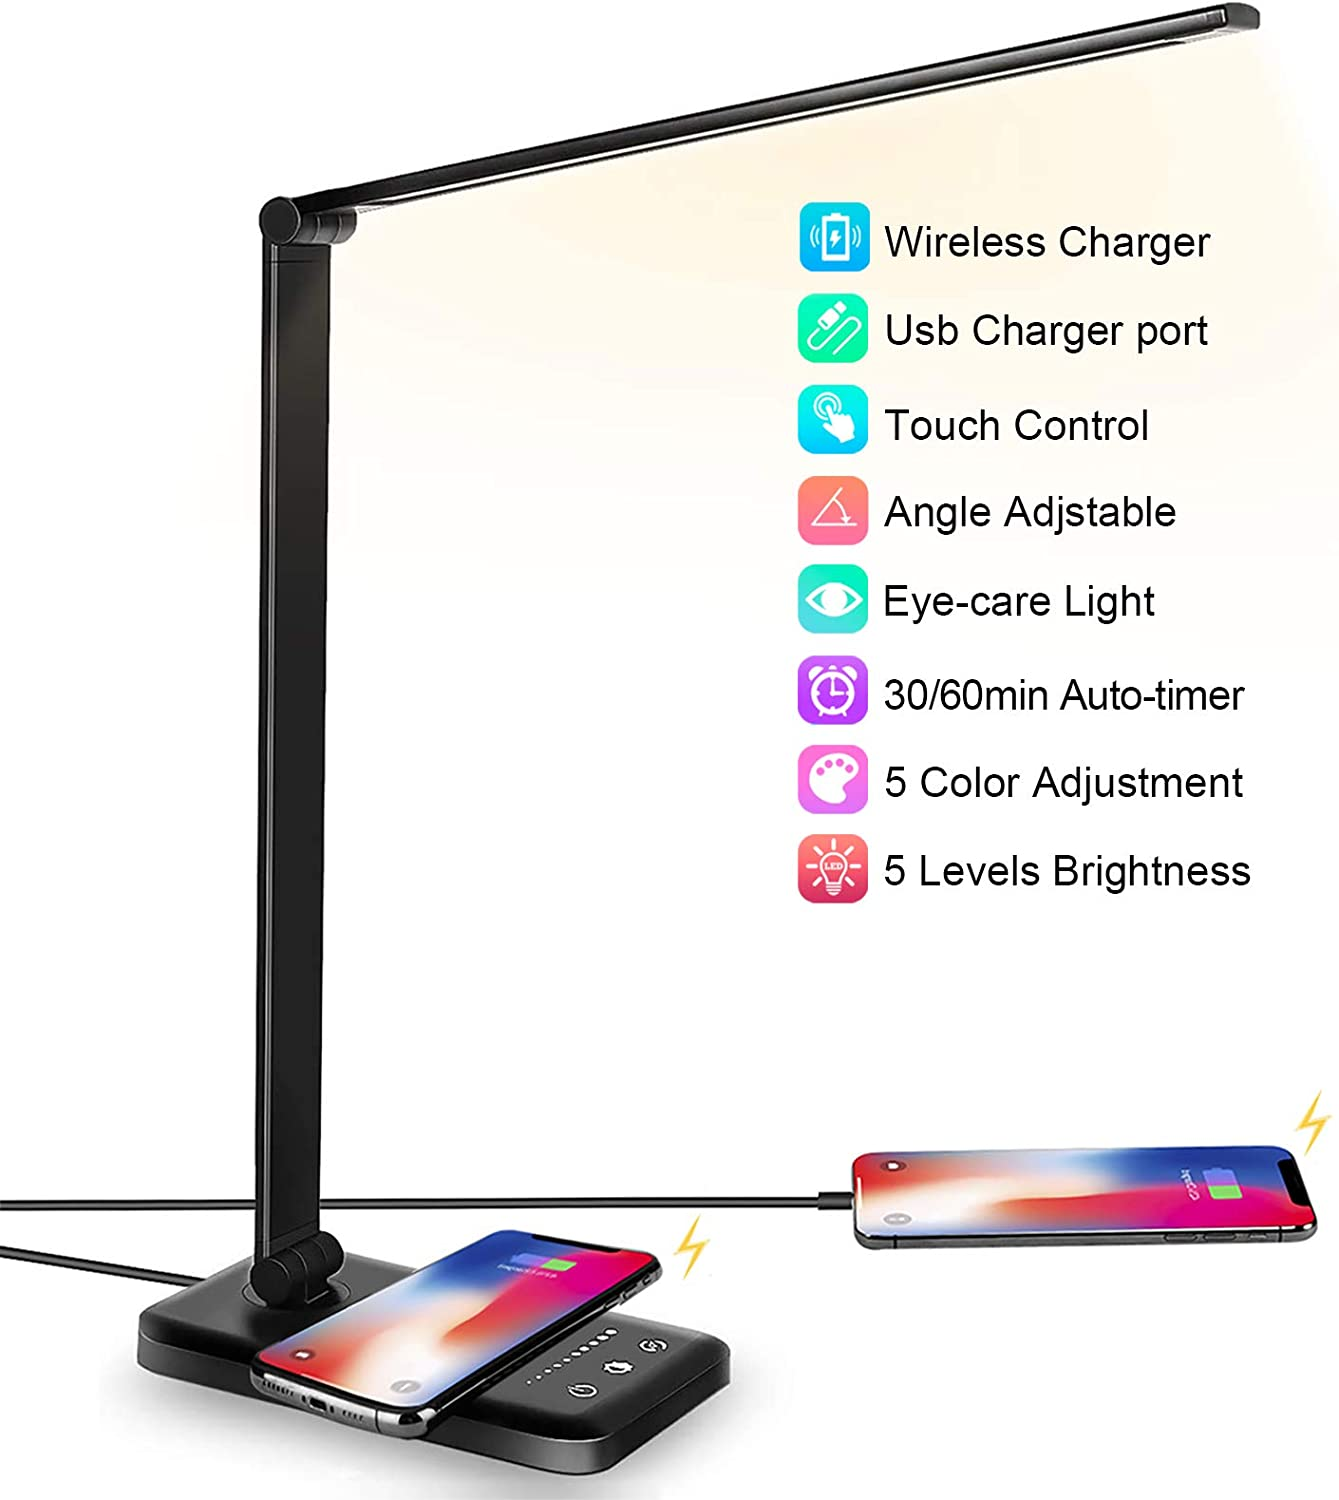 JOSTIC LED Desk Lamp with Wireless Charger